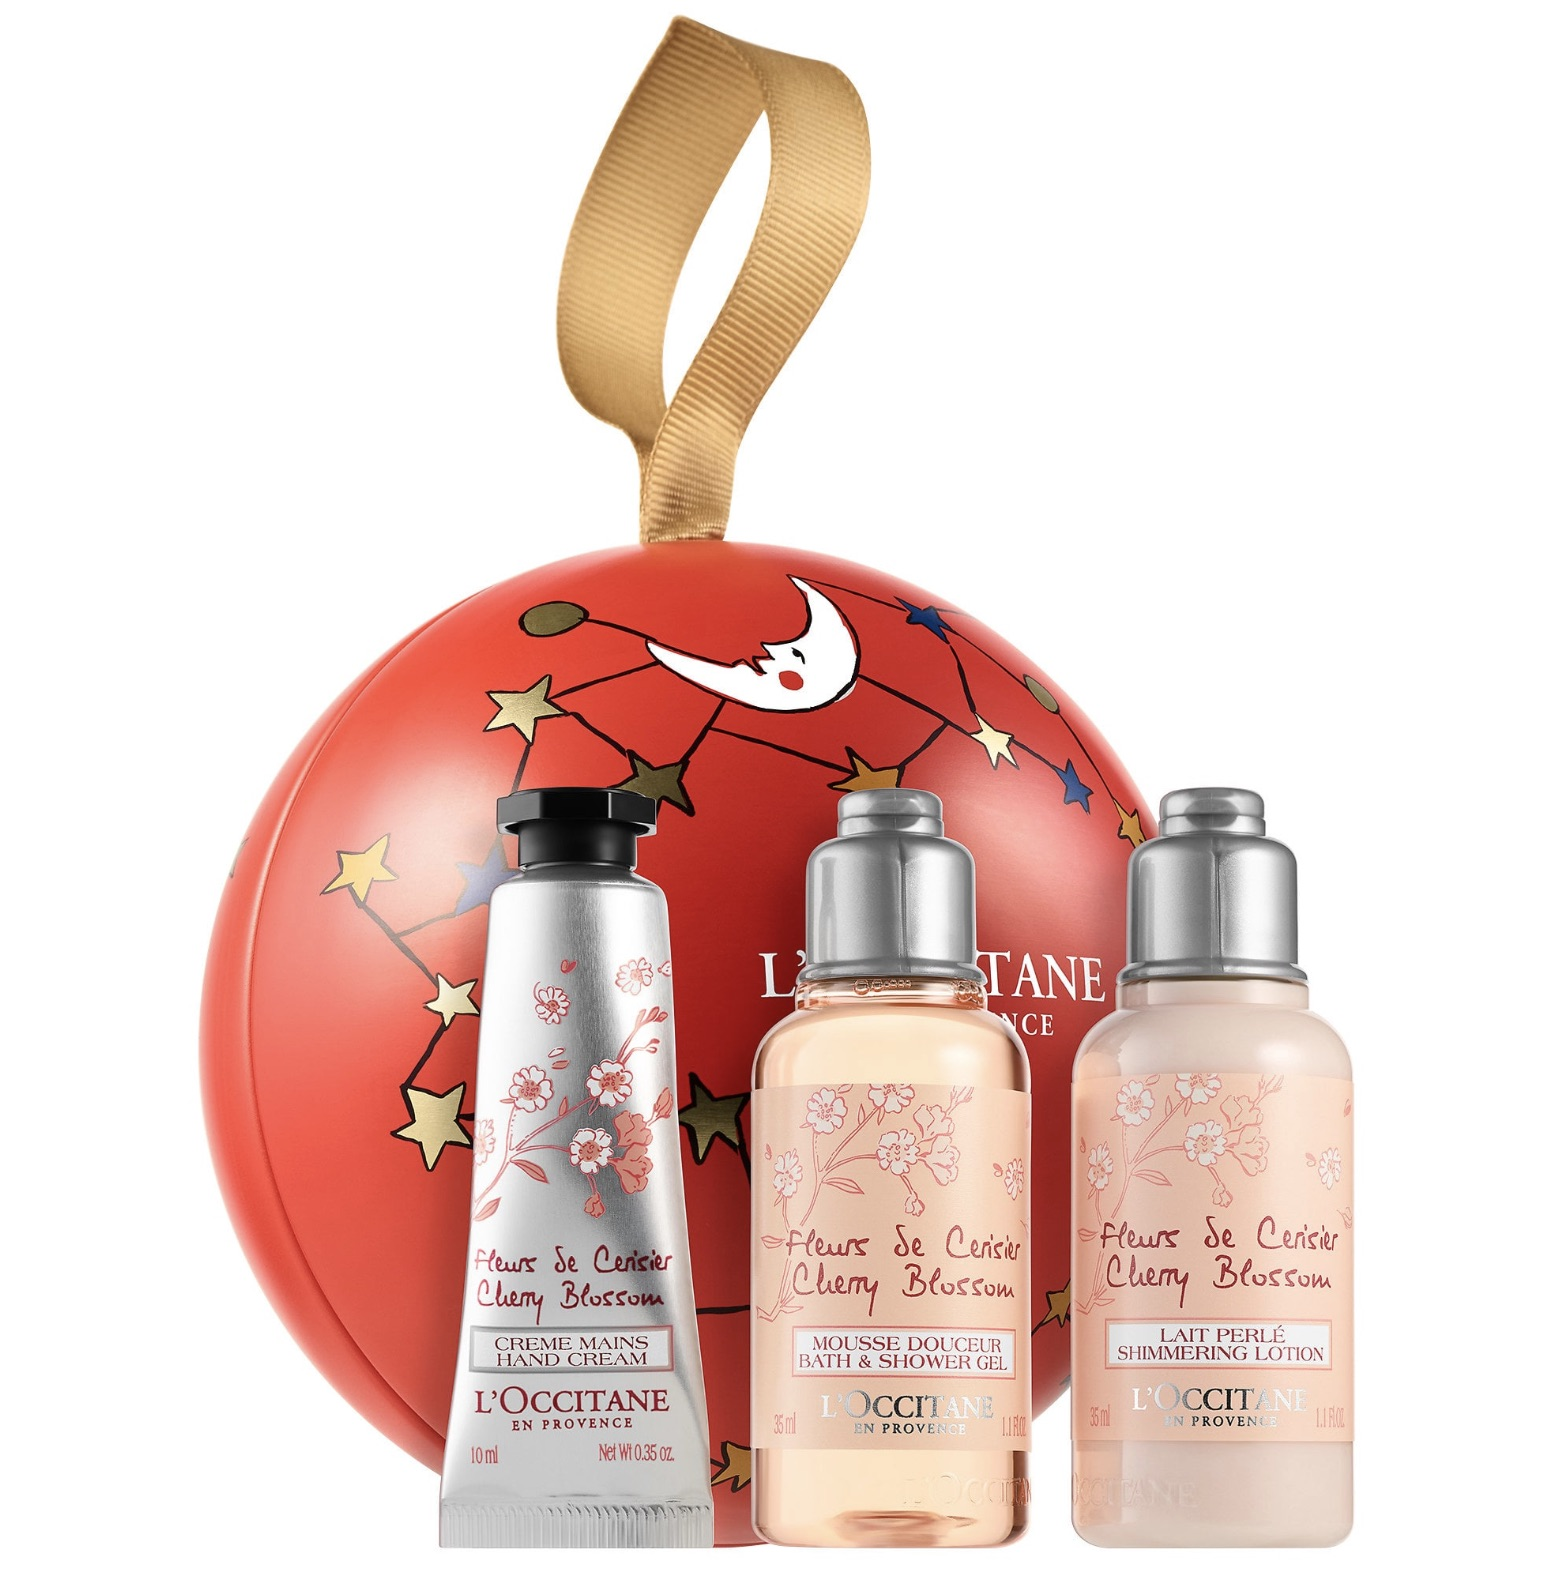 L'Occitane ornament holiday gift set: Cool gifts under $15